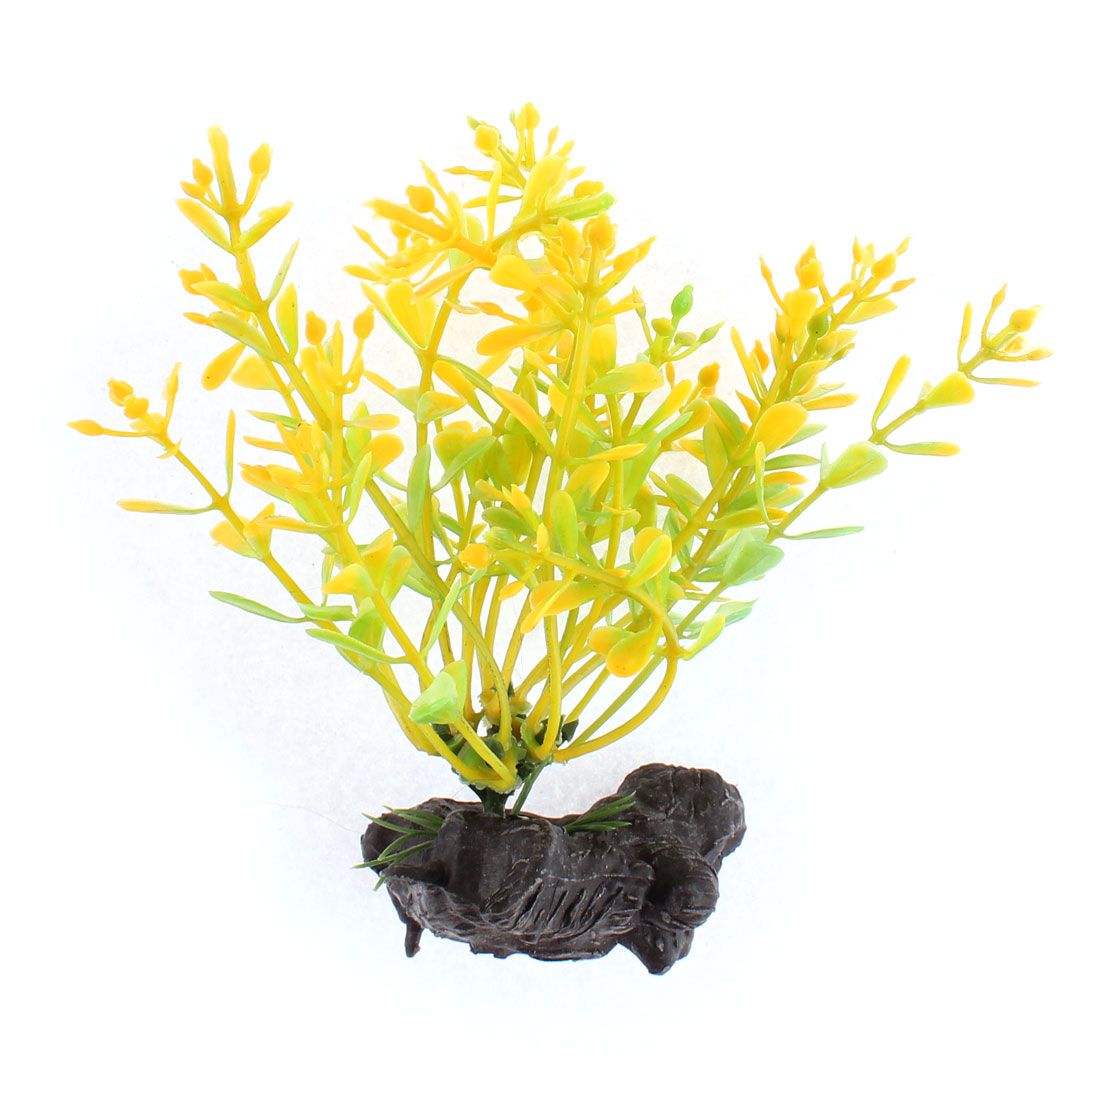 Aquarium Plastic Manmade Landscaping Water Plant Grass Decor